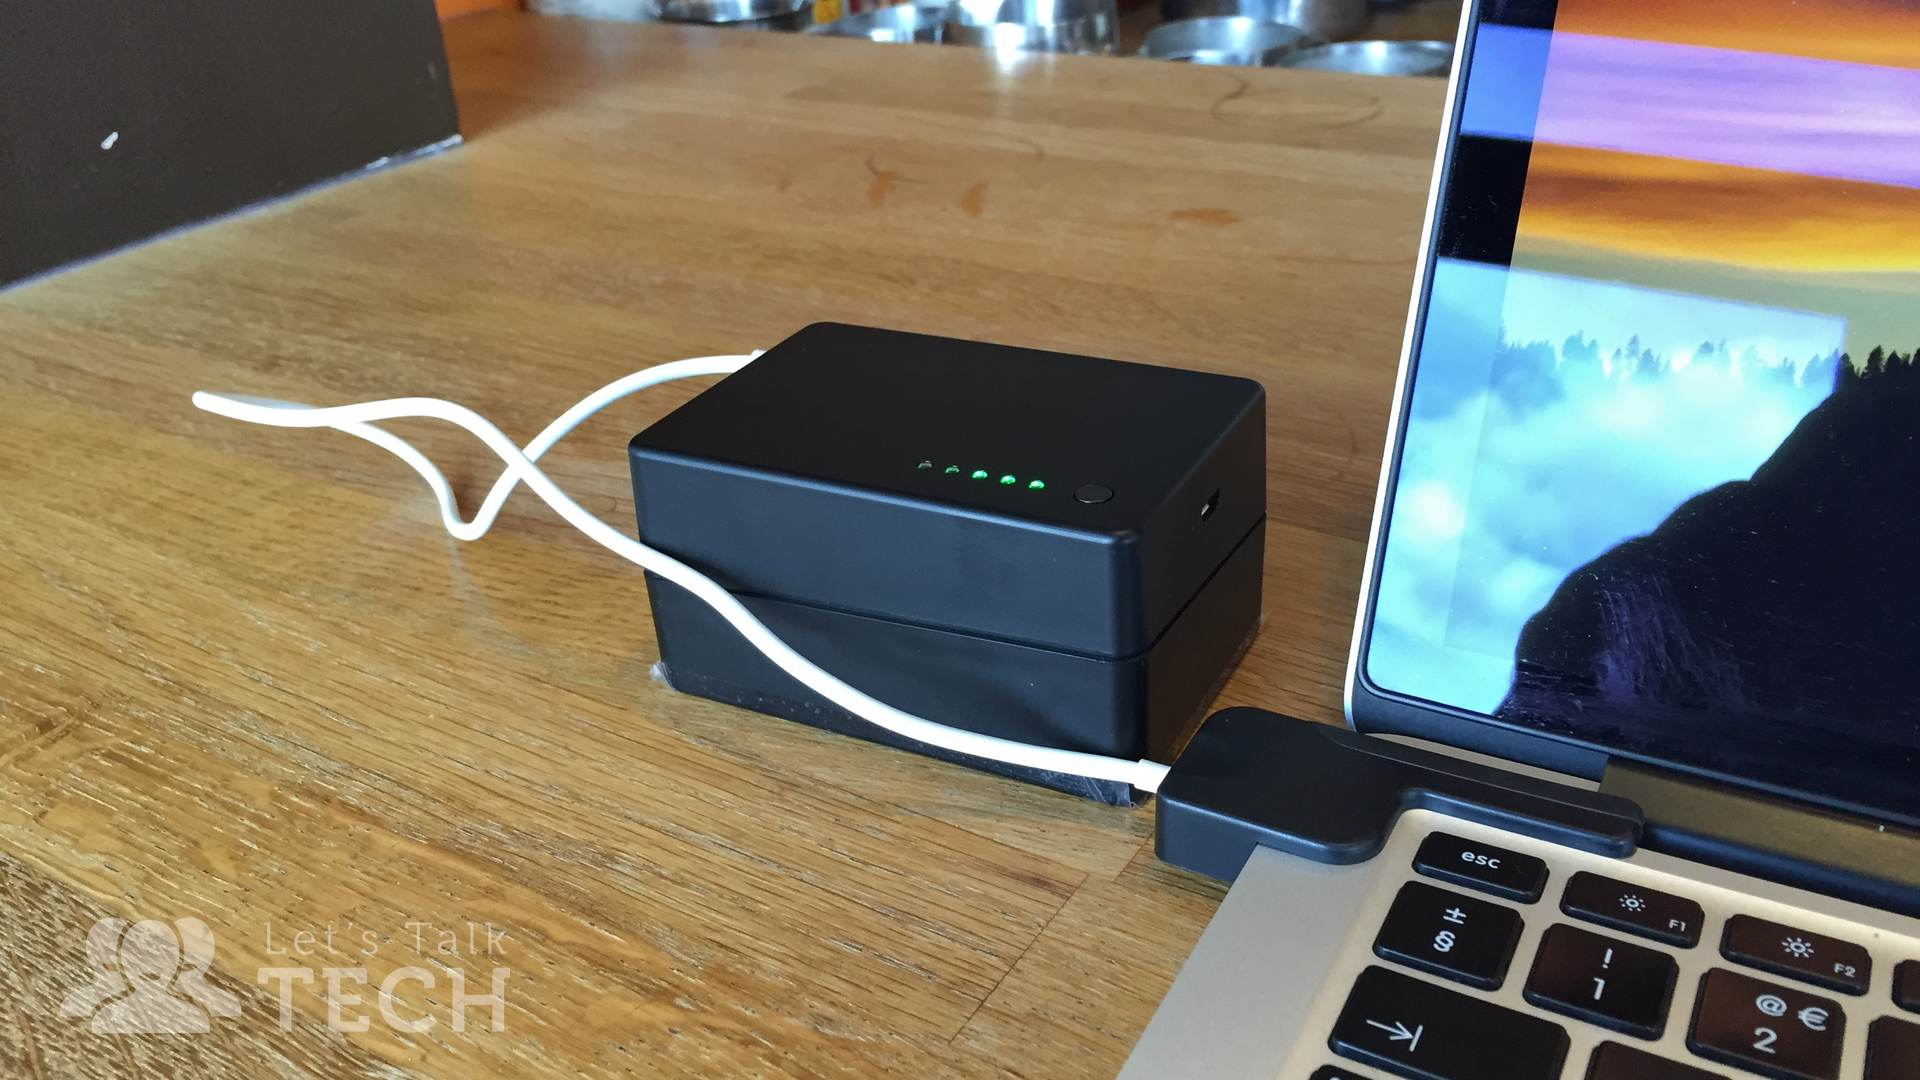 BatteryBox Mac Charger Plugged In